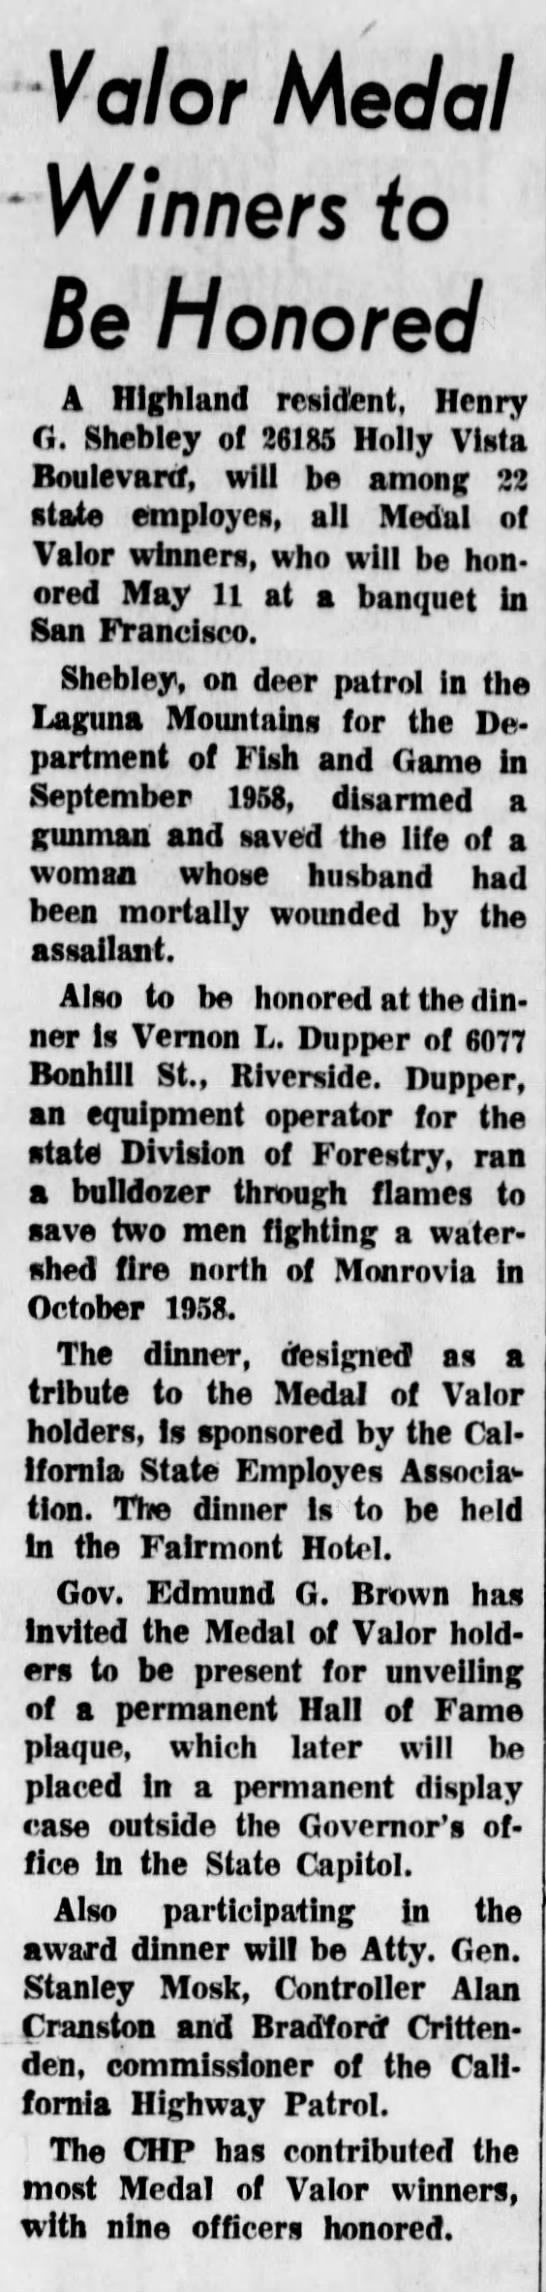 Valor Medal Winners to Be Honored  4/15/1963 - Valor Medal - Winners fo Be Honored A Highland...